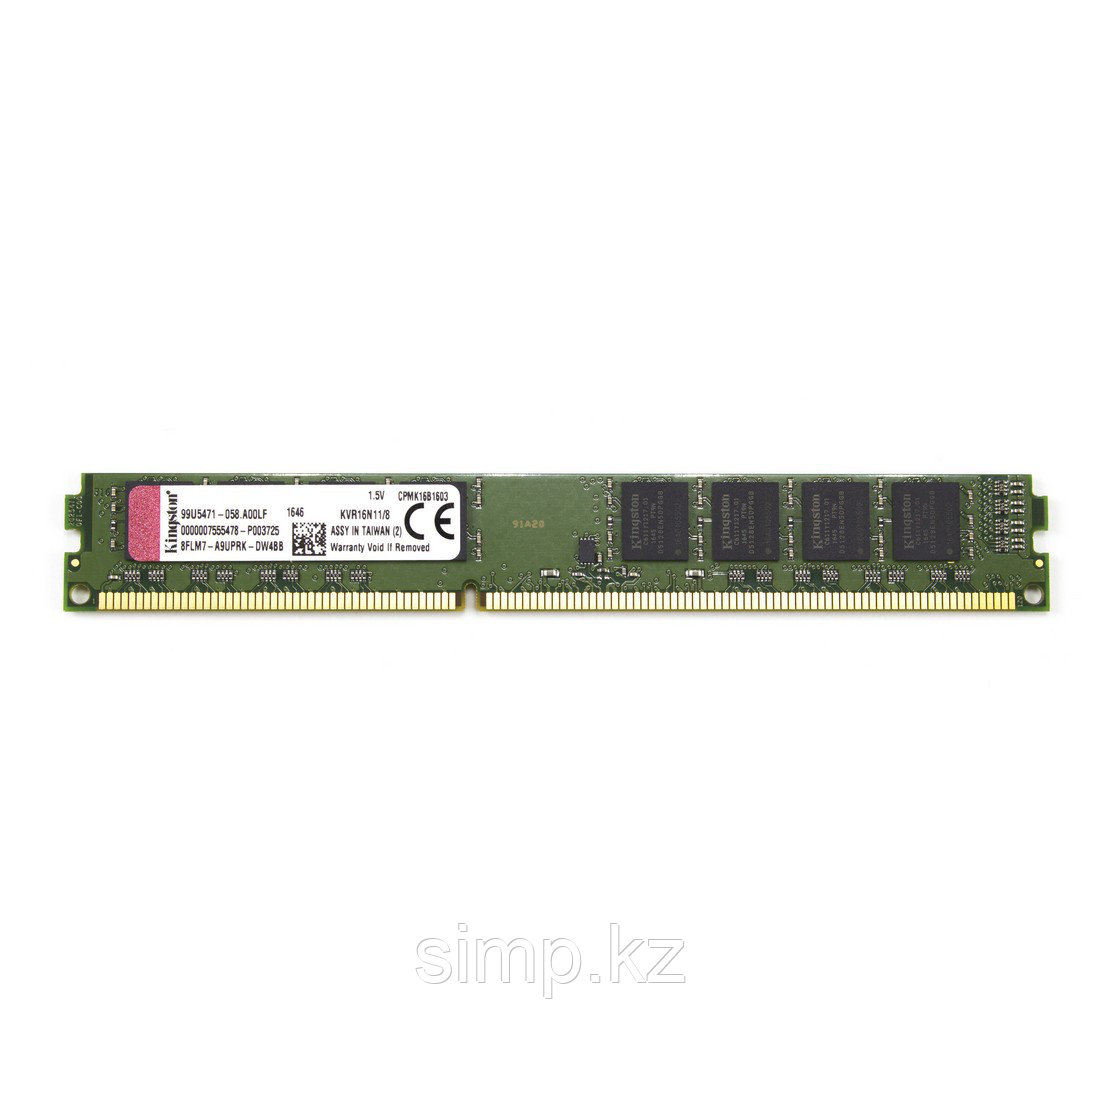 Модуль памяти Kingston KVR16N11/8 CL11 DDR3 8 GB DIMM <PC3-12800/1600MHz> 16 chip